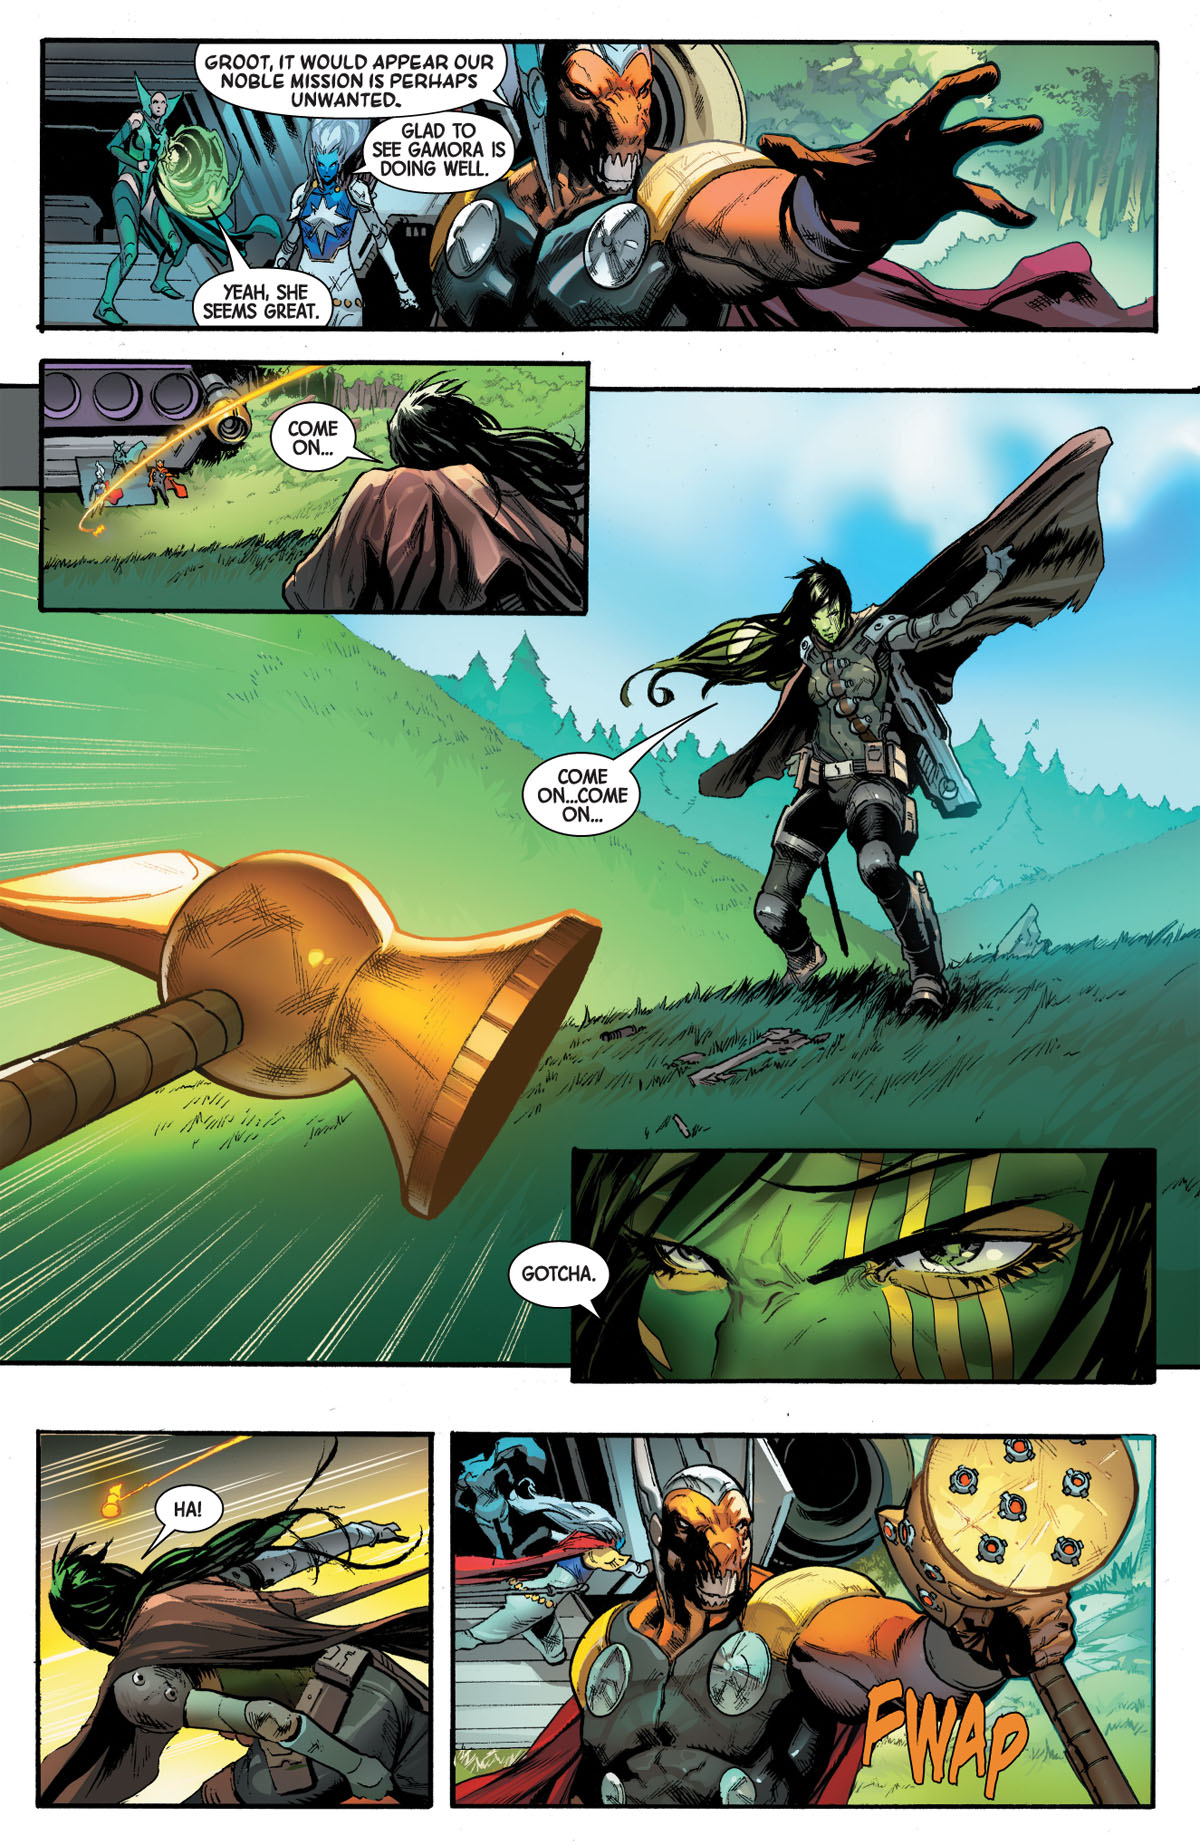 Guardians of the Galaxy #4 page 3